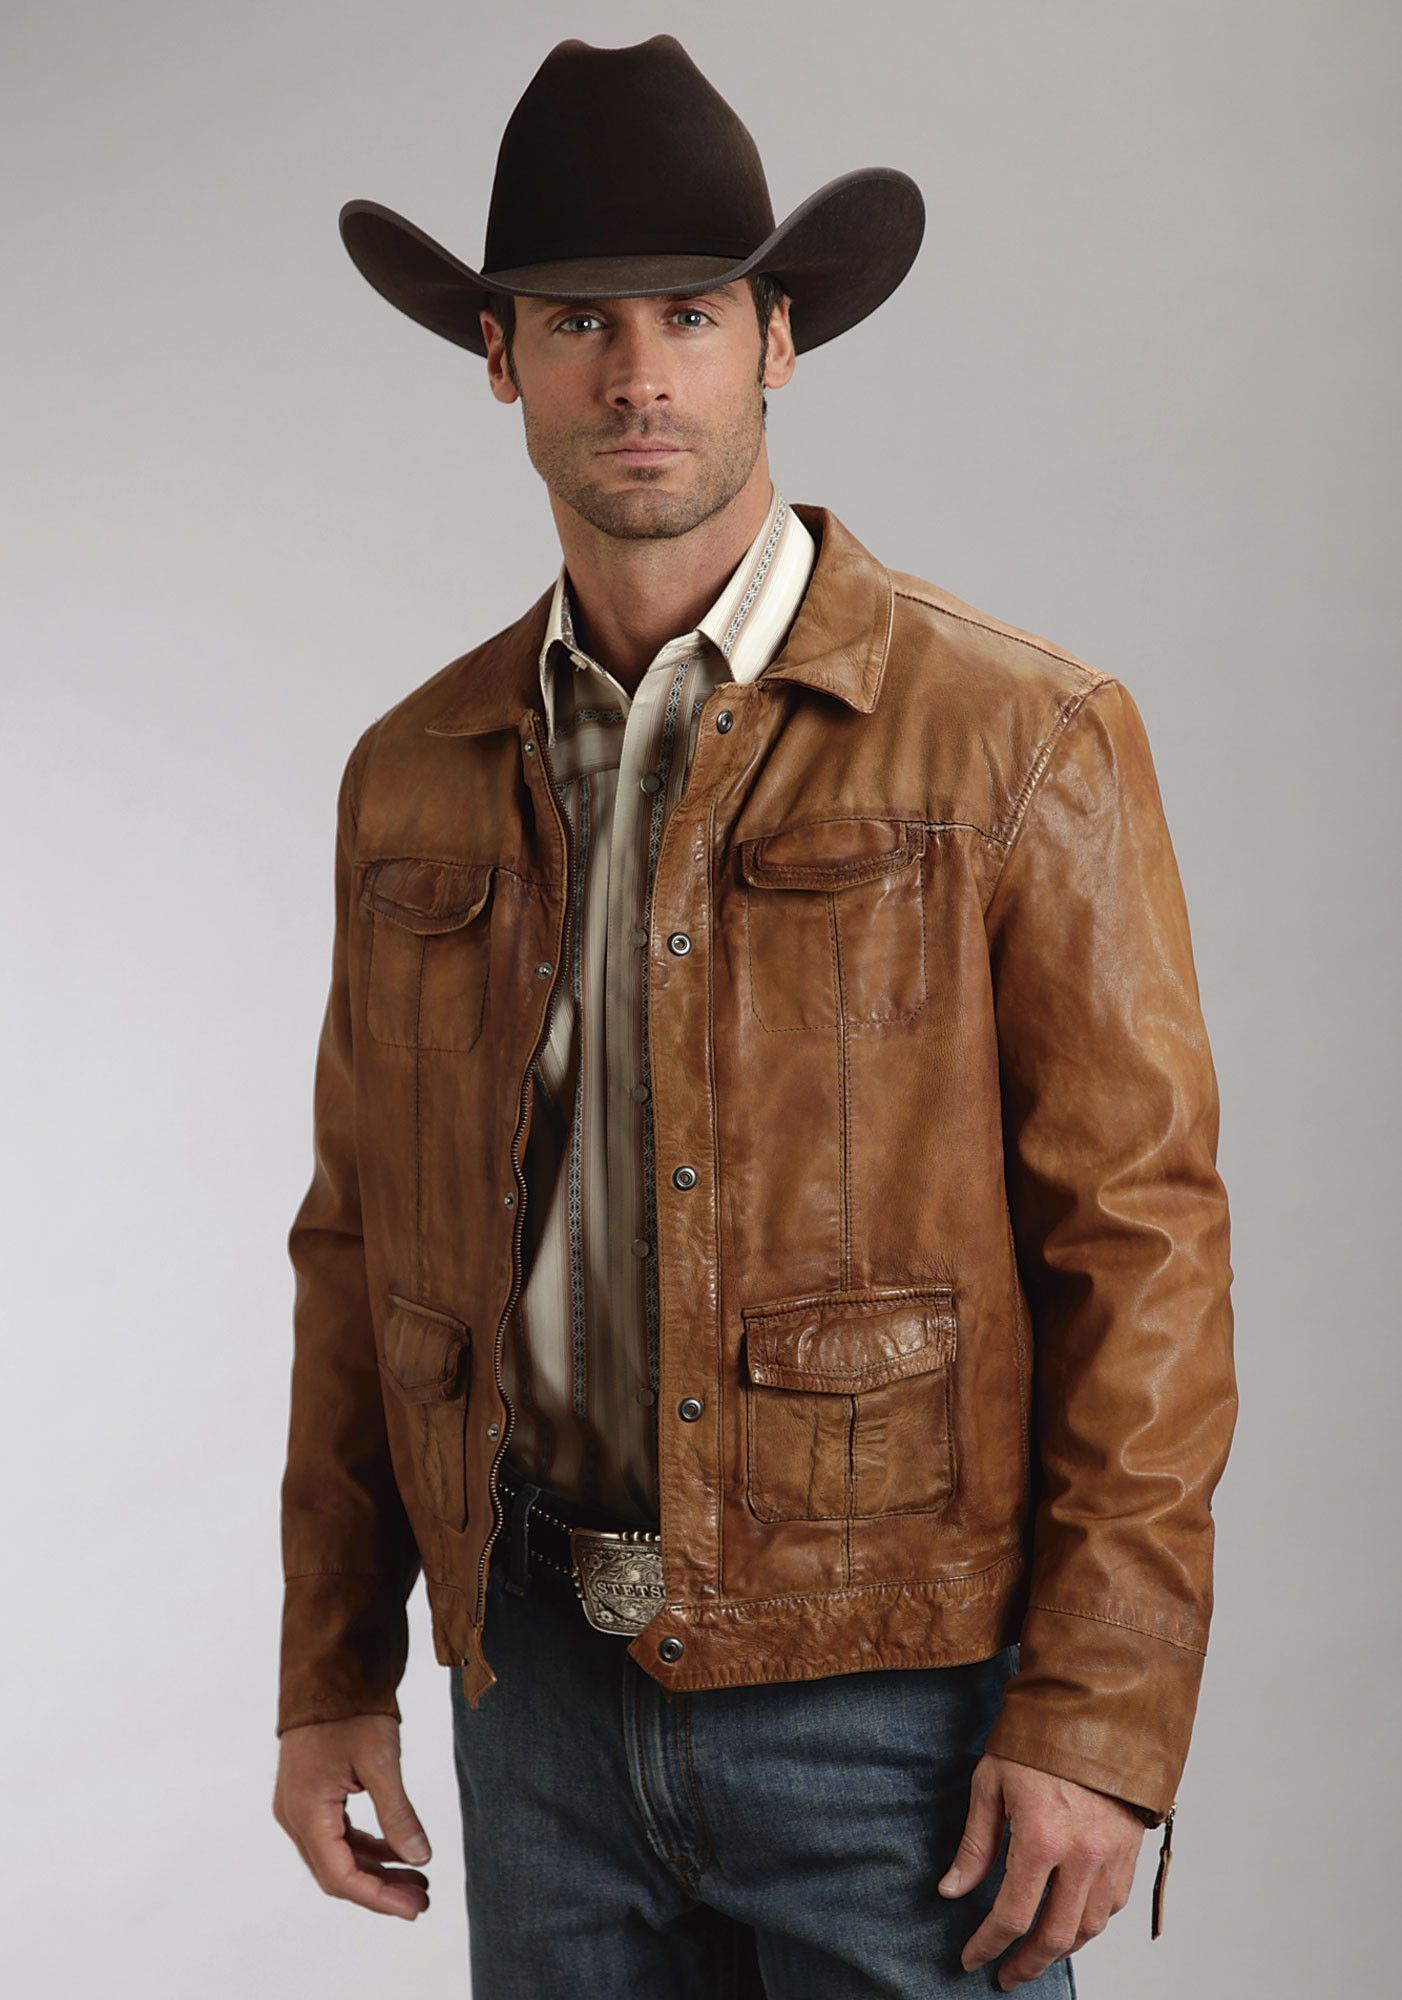 For high quality, traditional, western apparel with